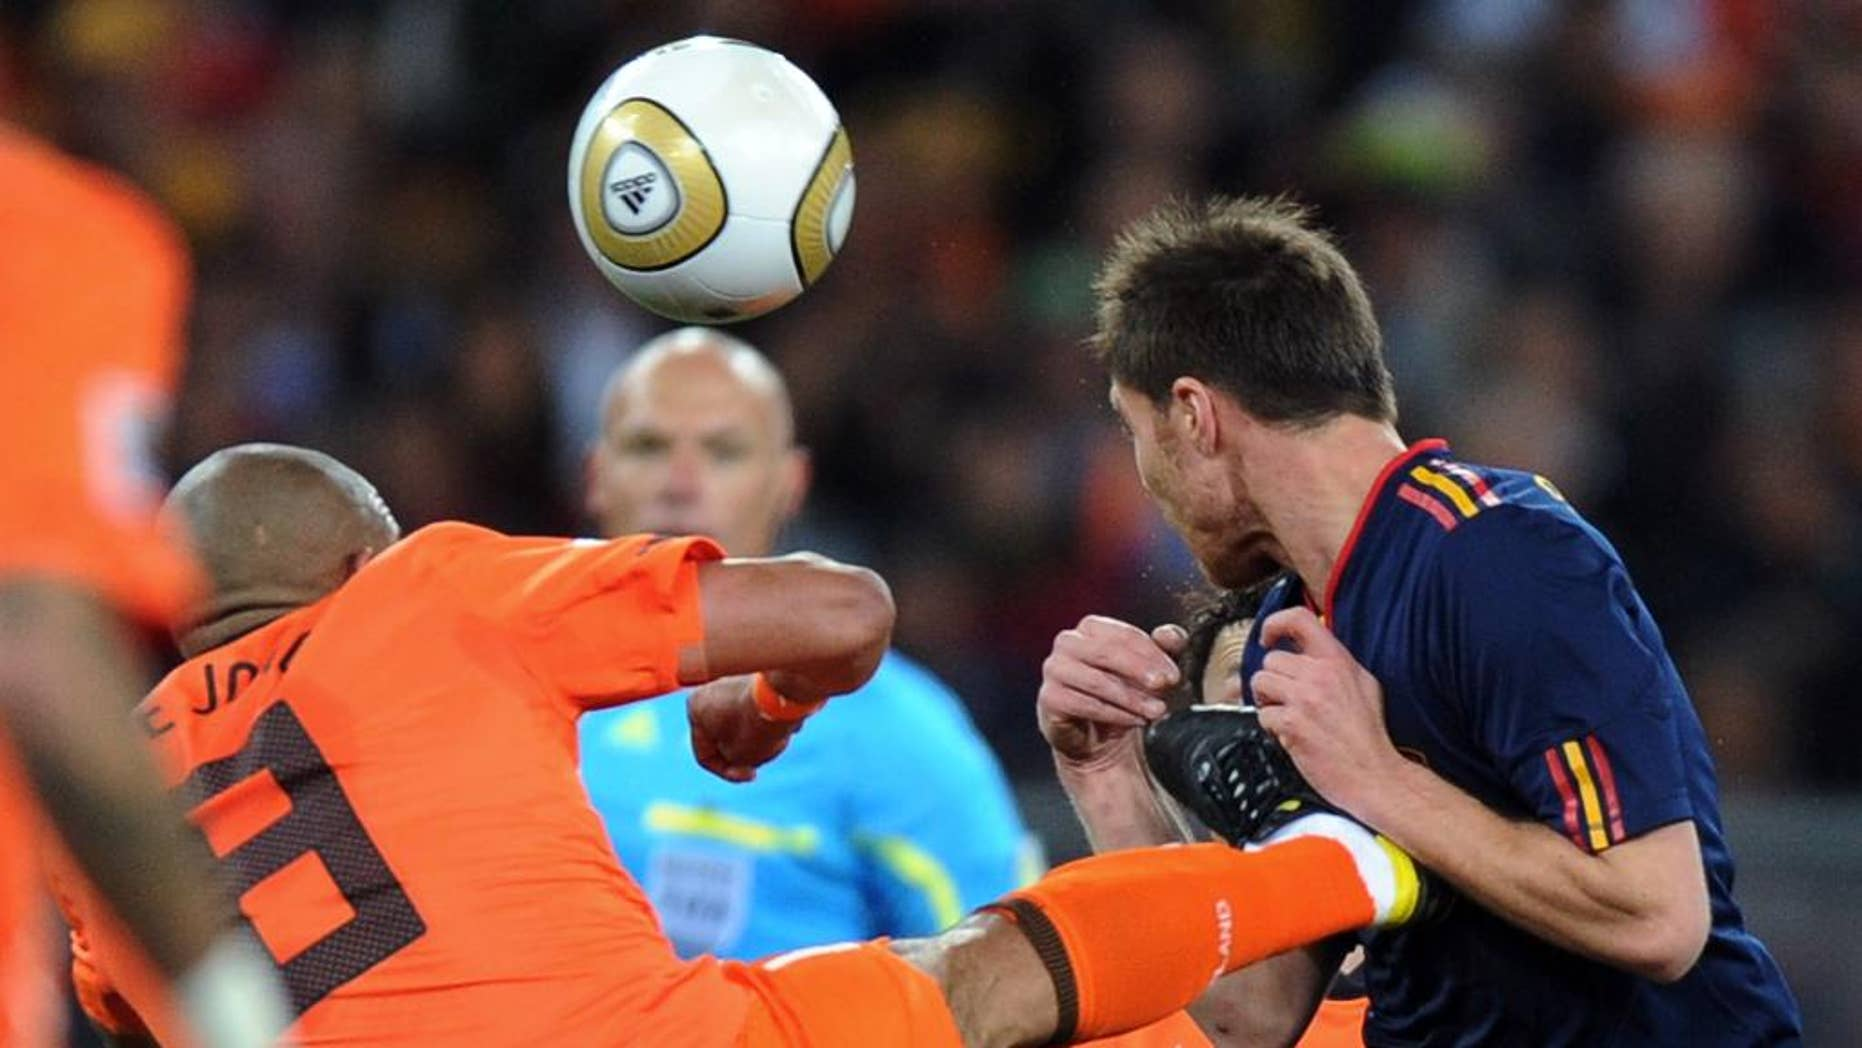 """FILE - In this Sunday, July 11, 2010 file photo, Netherlands' Nigel de Jong, left, fouls Spain's Xabi Alonso during the World Cup final soccer match between the Netherlands and Spain at Soccer City in Johannesburg, South Africa. The days of fluent, attacking """"total football"""" are long gone for the Netherlands. Now, results matter more than the way they are achieved. Anybody expecting the Netherlands to revert to the type of free-flowing attacking play that was long the hallmark of Orange teams when Louis van Gaal's team takes on Spain on Friday should think again. Van Gaal has signaled he will likely play five defenders against Spain to stifle the defending world champion's own fluent attacking style. That could revive memories of the brutal 2010 final in which eight Dutch players were booked and one sent off. Robin van Persie said Sunday he has no regrets about the 2010 campaign.""""I think we can look back with pride"""" at 2010, he says.  (AP Photo/Daniel Ochoa de Olza, file)"""